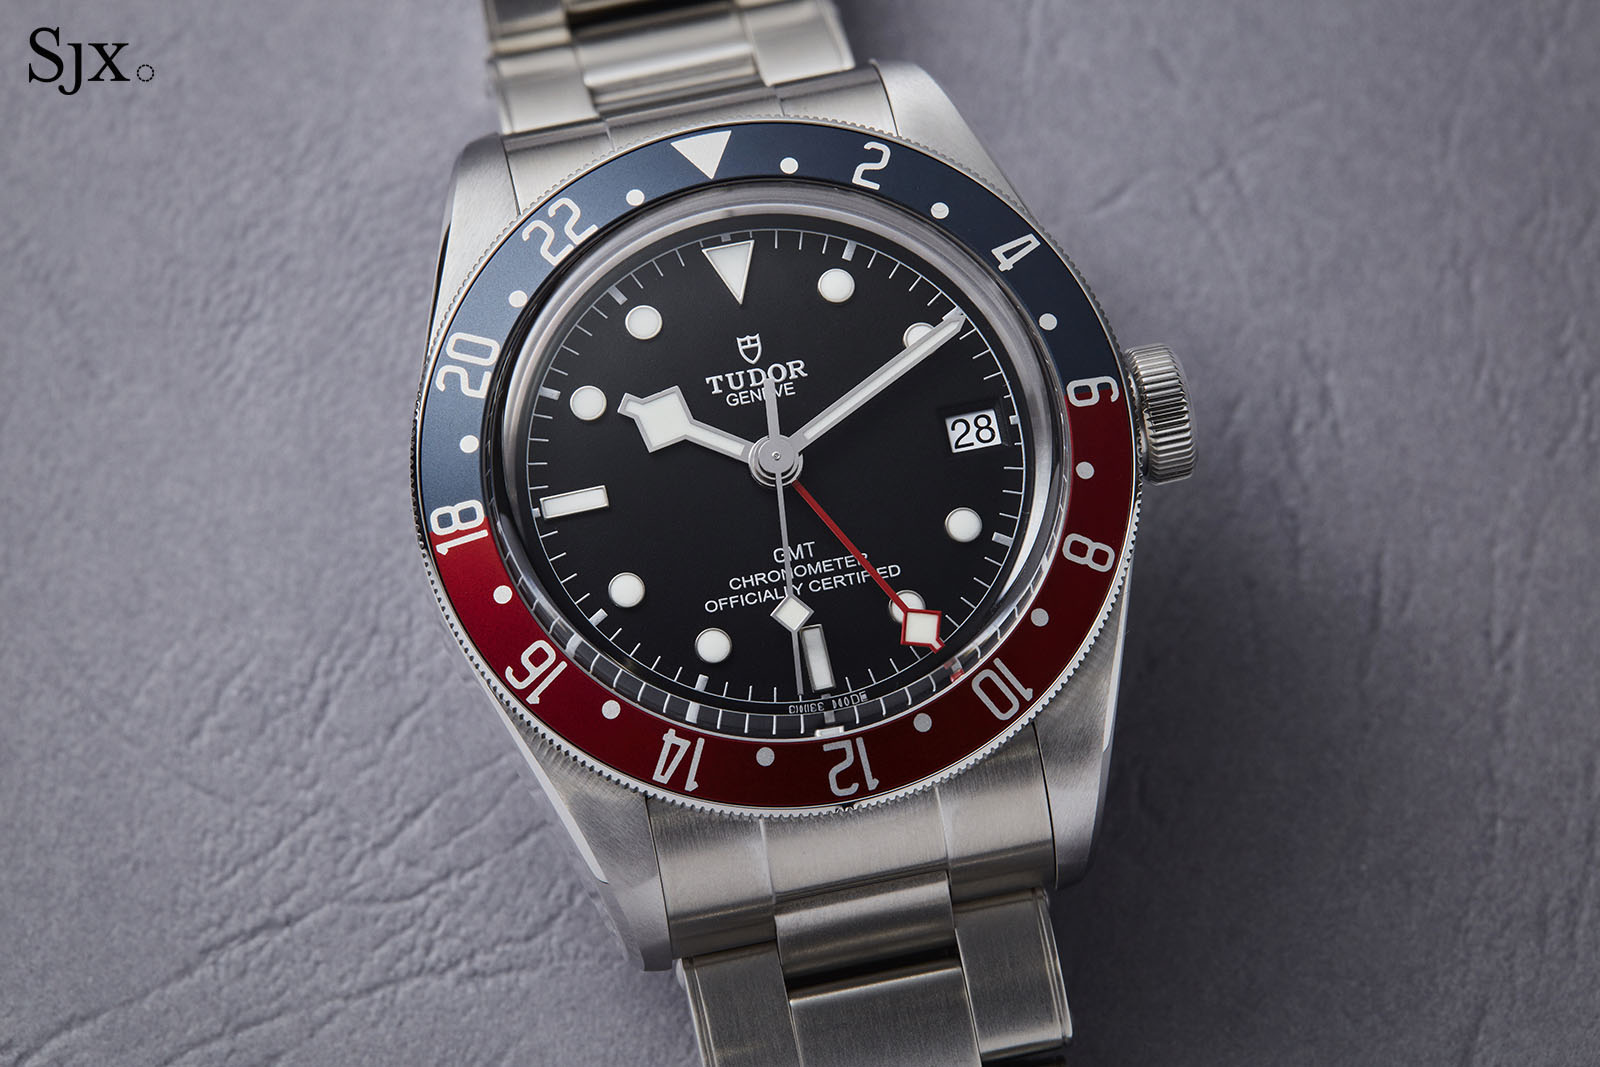 06a29971f26 Up Close with the Tudor Black Bay GMT A travel watch winner.